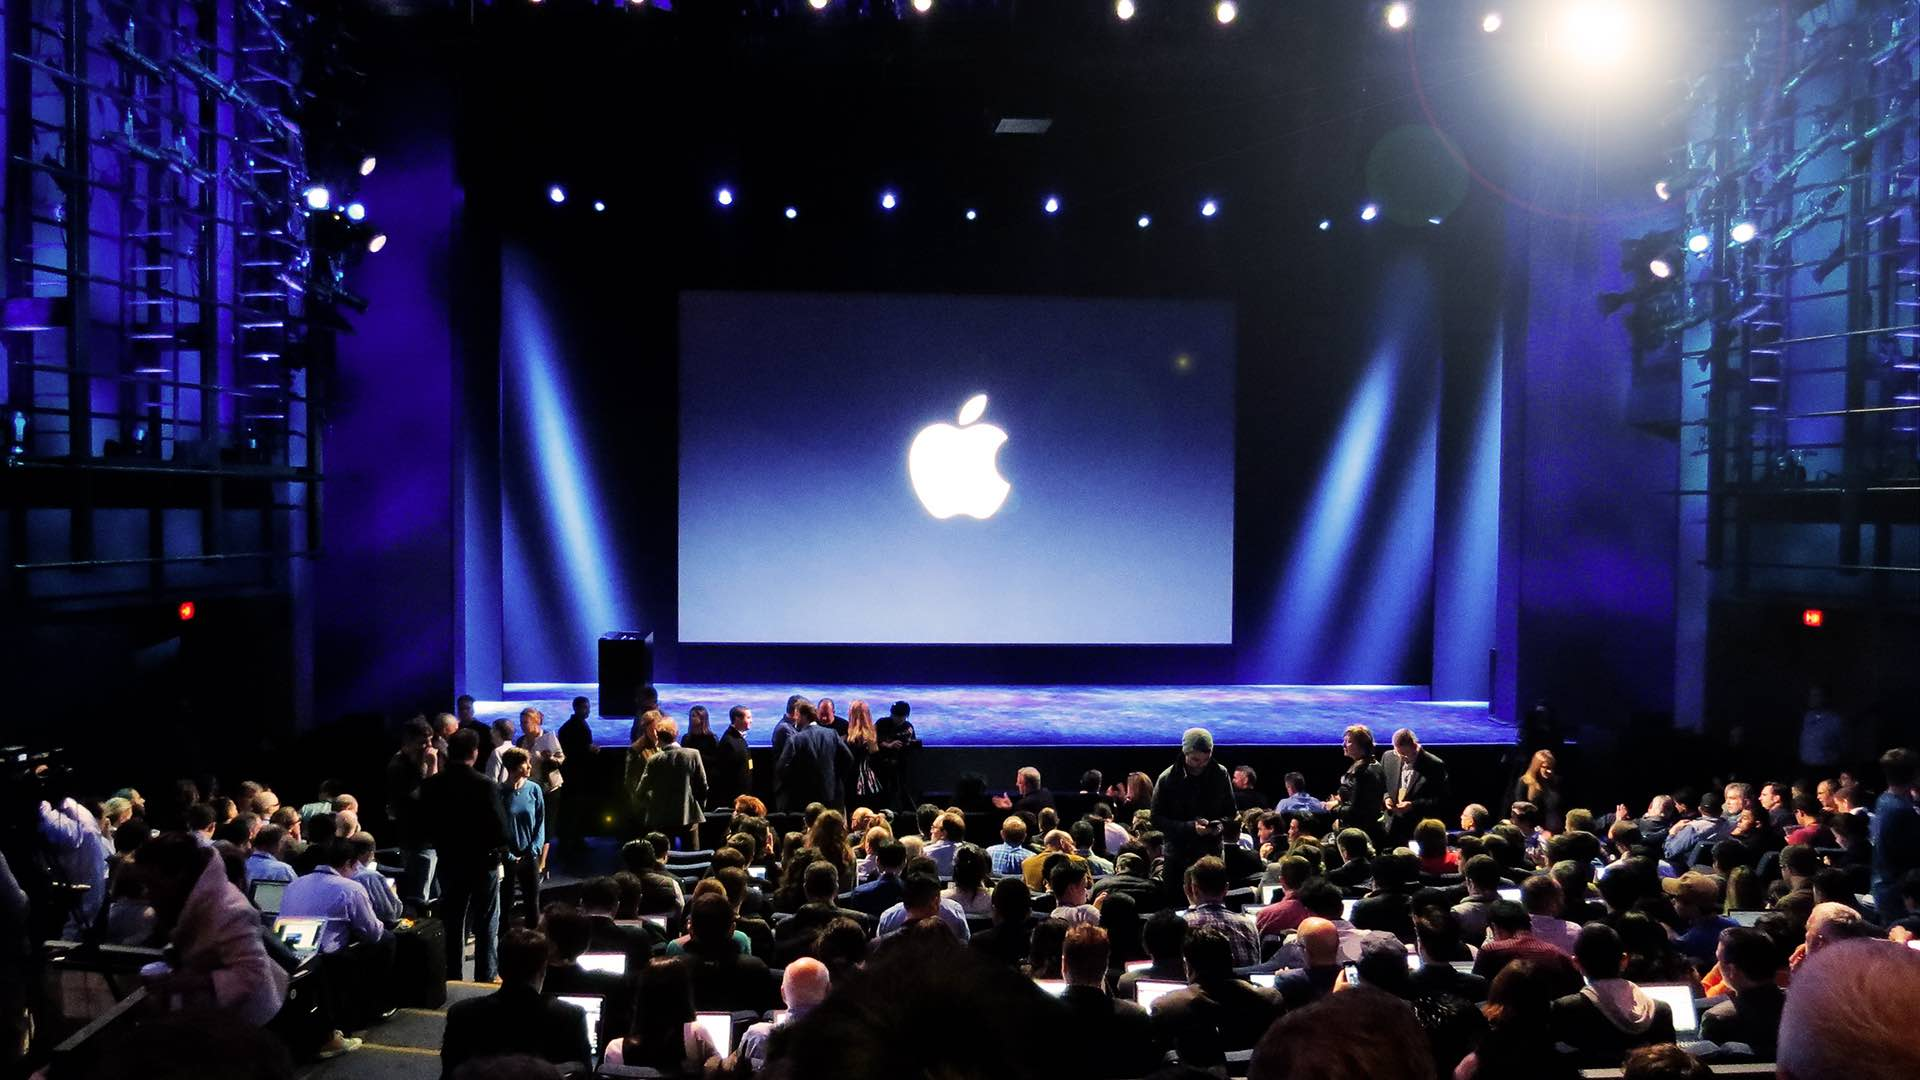 How To Watch The Apple Iphone 7 News What Mobile